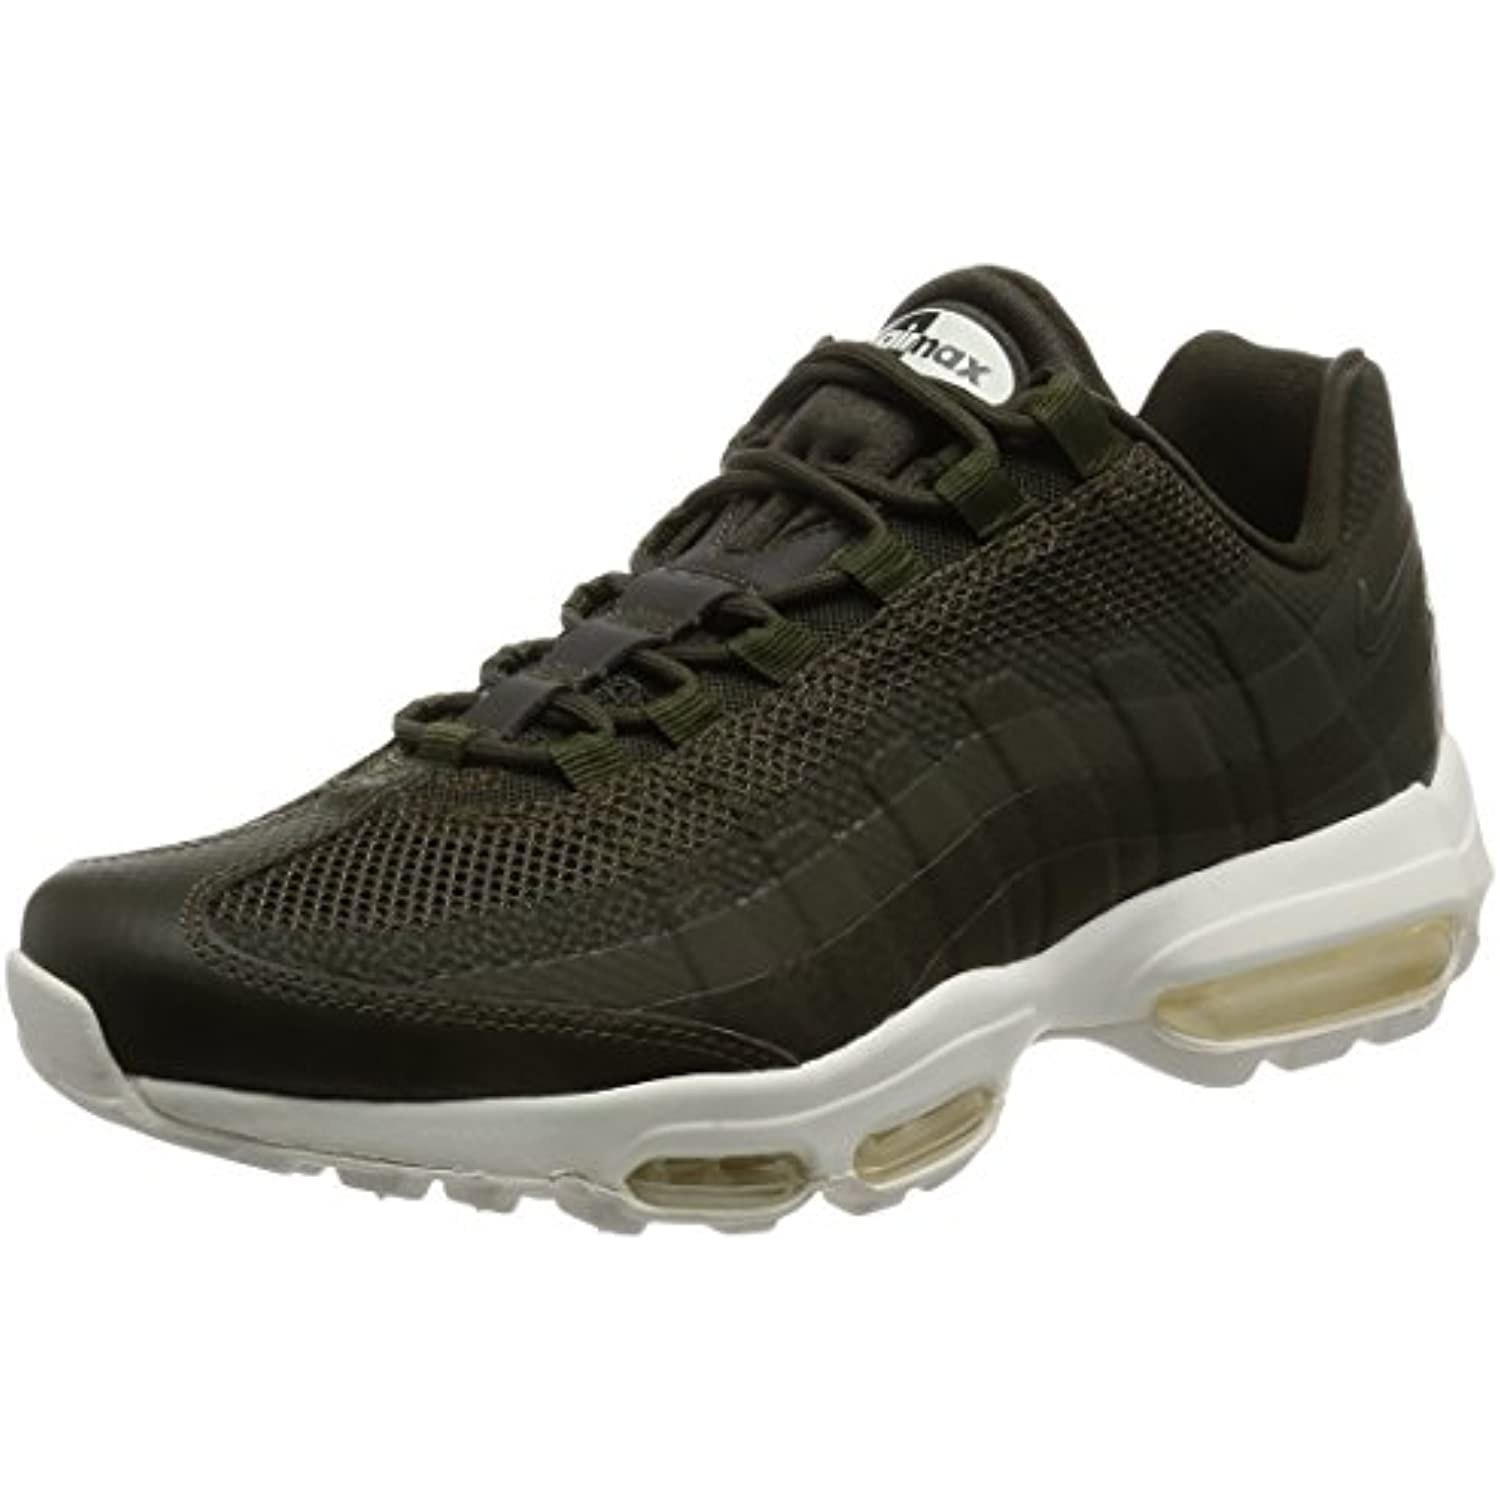 best sneakers b3f7b 888fe NIKE AIR MAX 95 ULTRA ESSENTIAL KAKI - - - B07589ZJNJ - 070abd